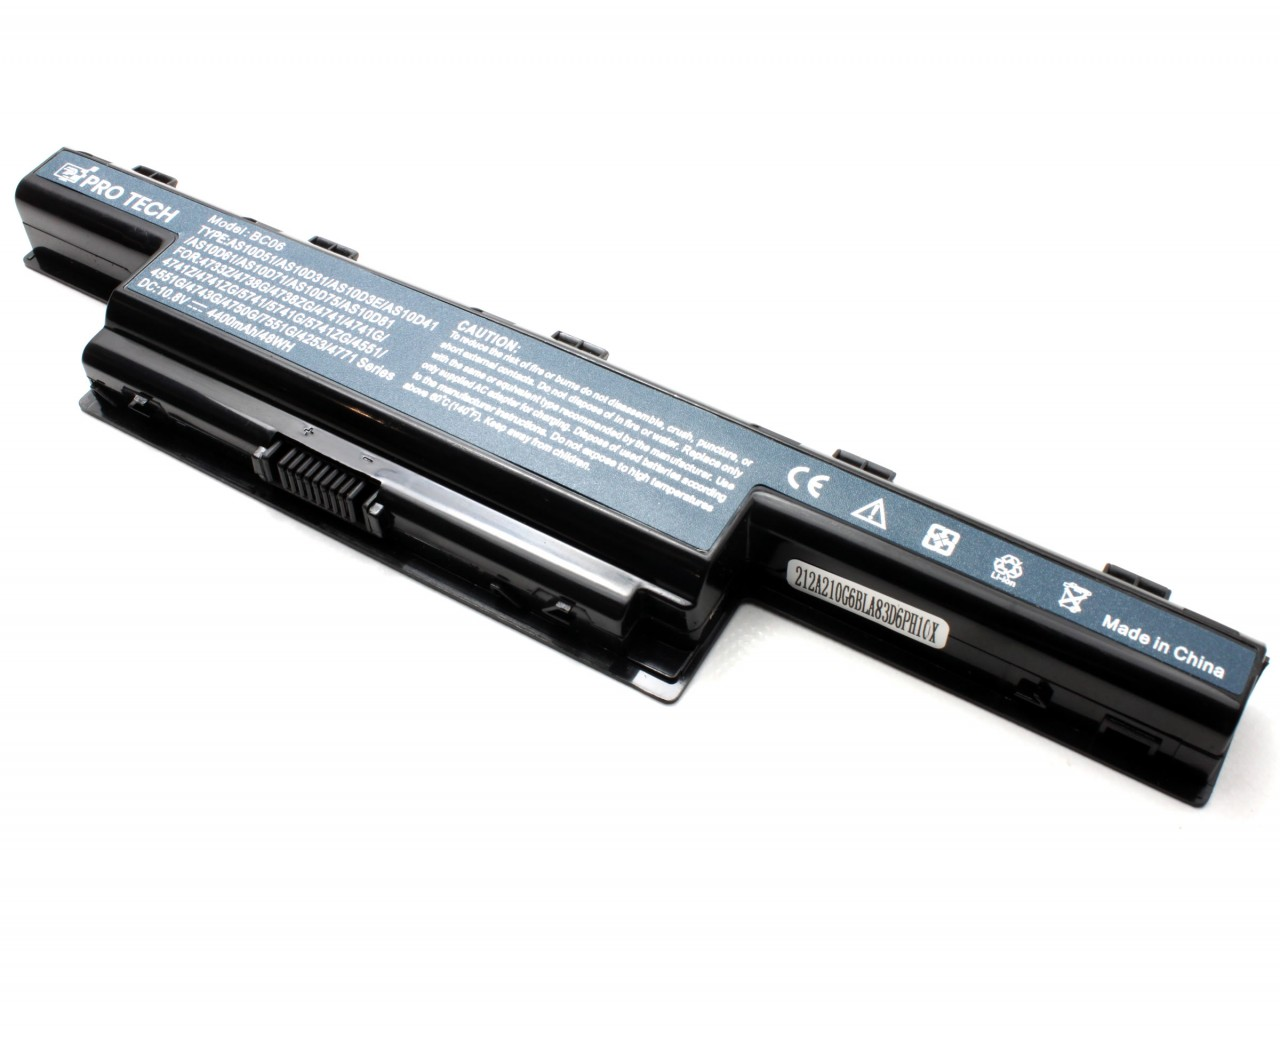 Baterie Packard Bell EasyNote LM81 6 celule imagine powerlaptop.ro 2021